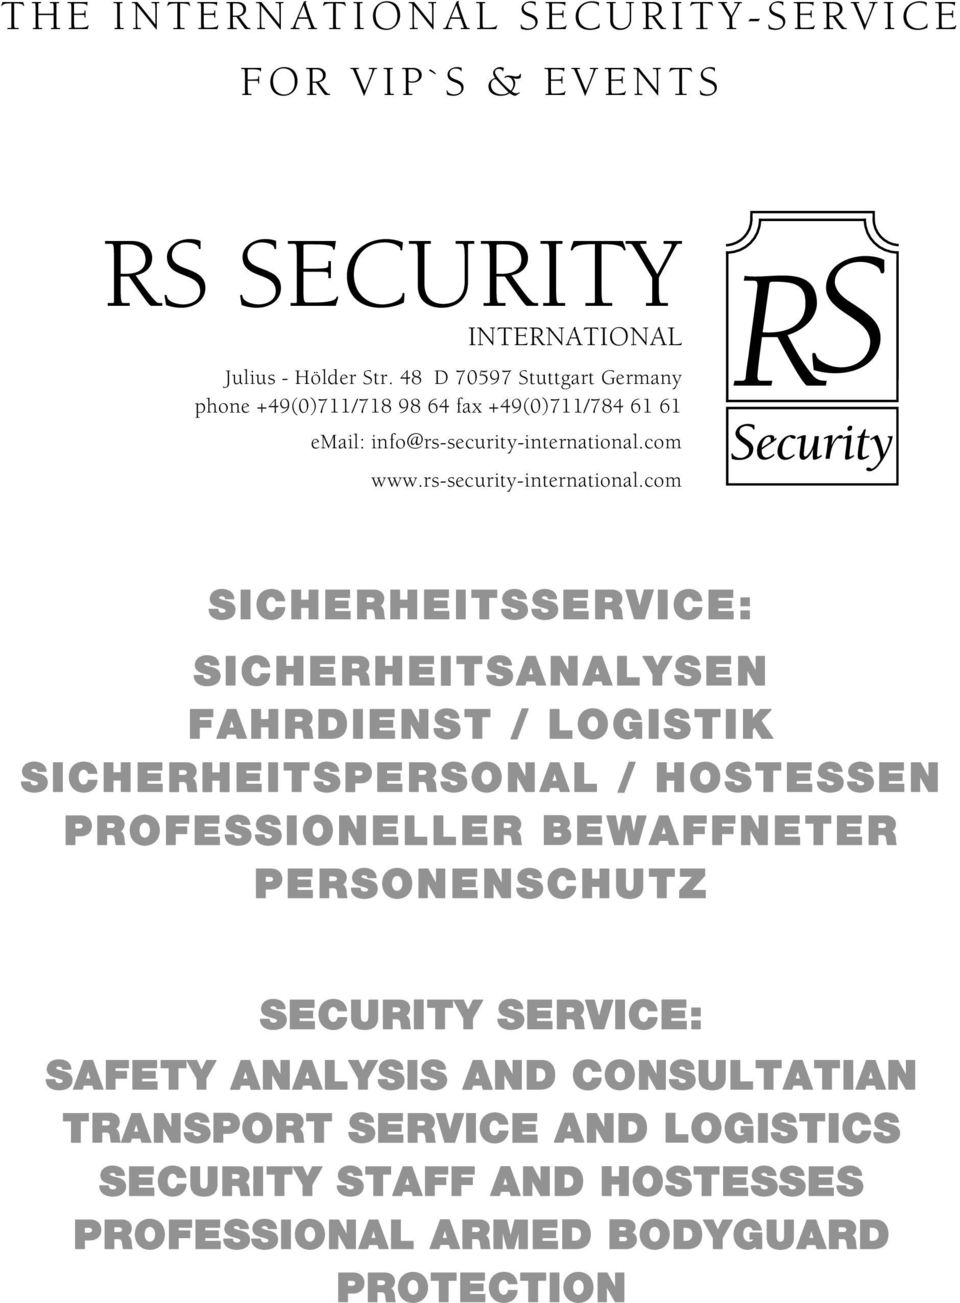 rs-security-international.